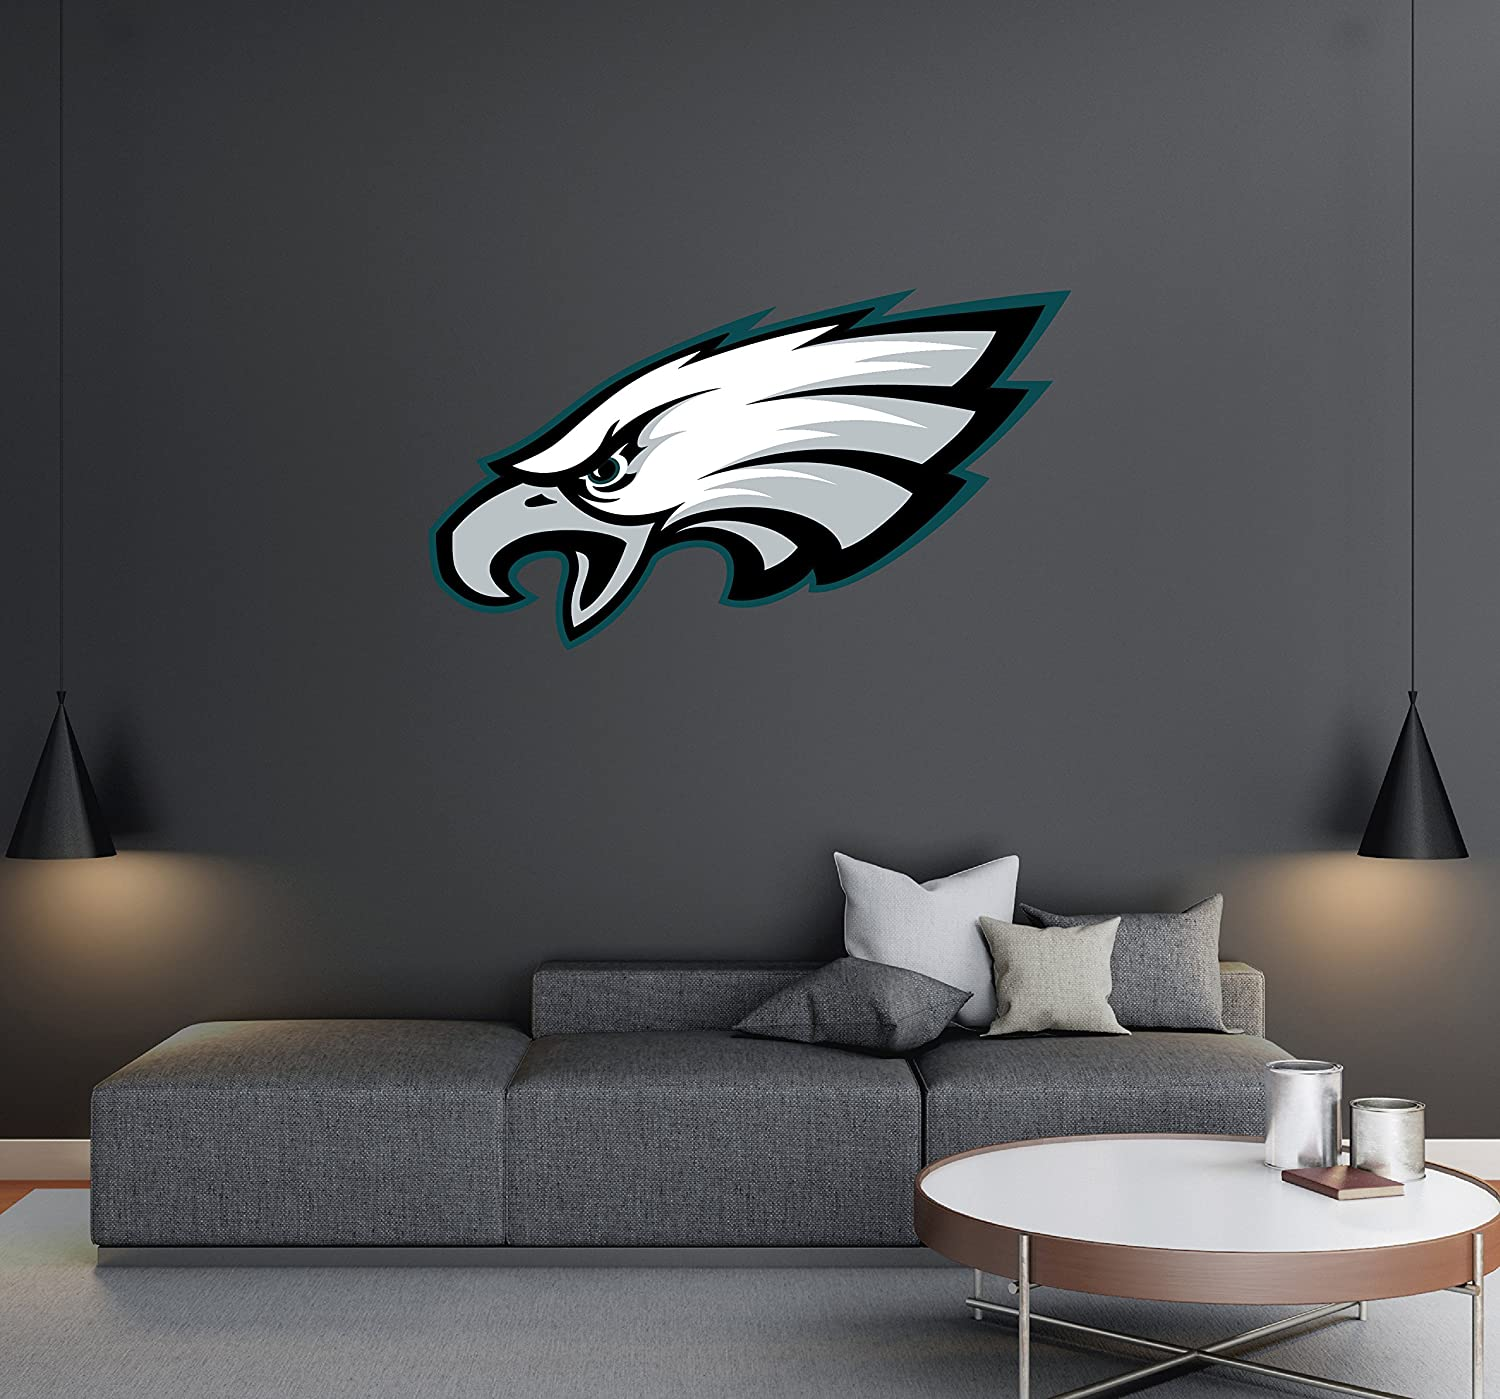 "Philadelphia Eagles - Football Team Logo - Wall Decal Removable & Reusable For Home Bedroom (Wide 20""x11"" Height)"